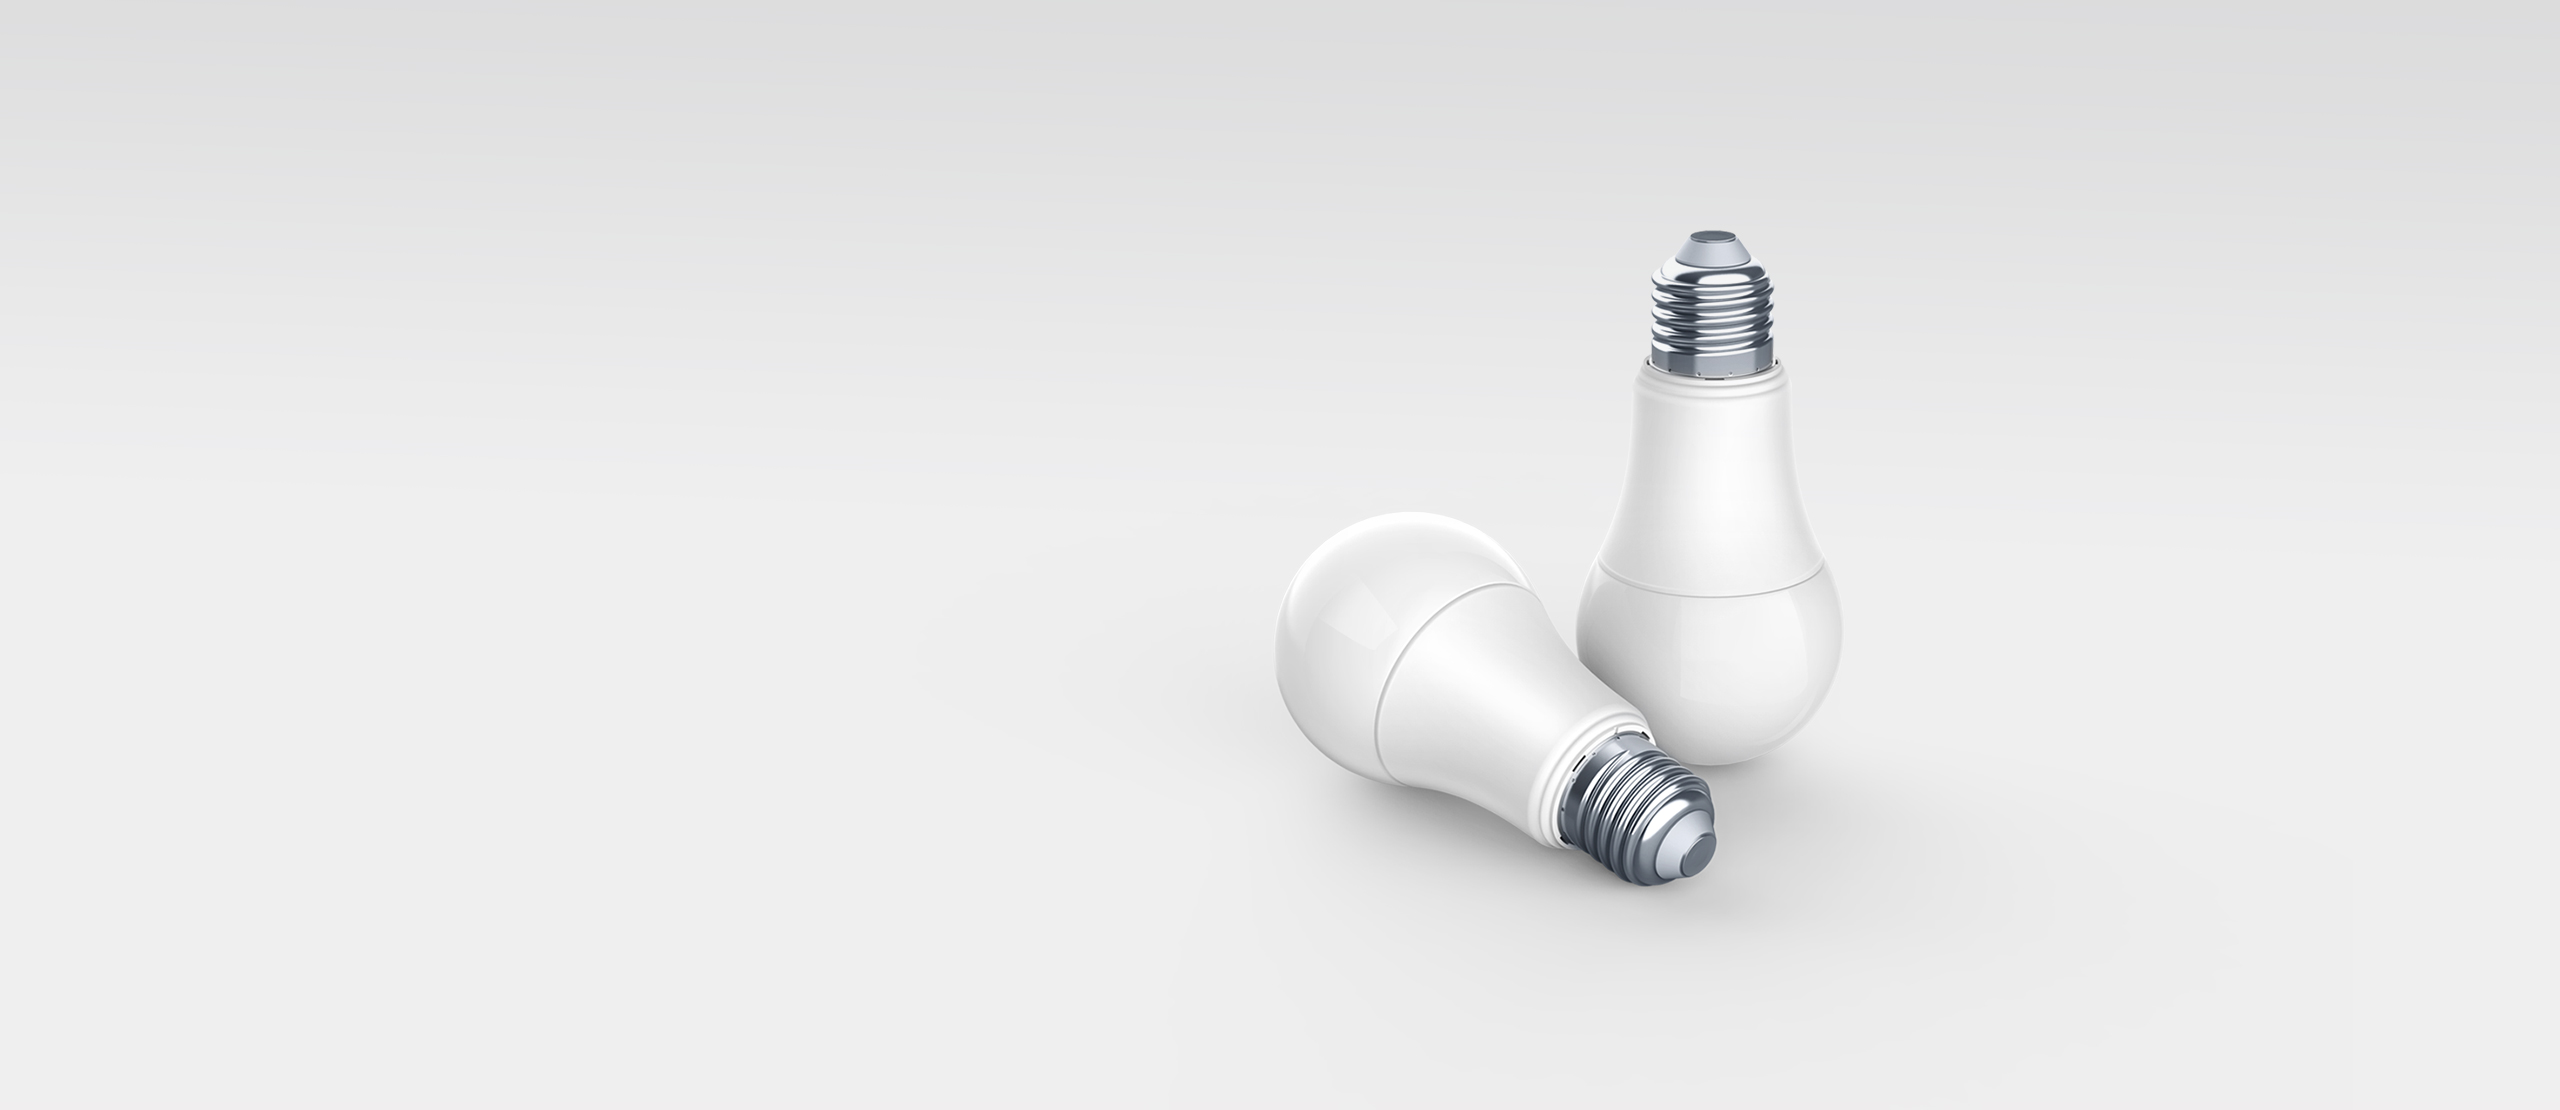 Aqara LED light bulb - key of your smart lighting